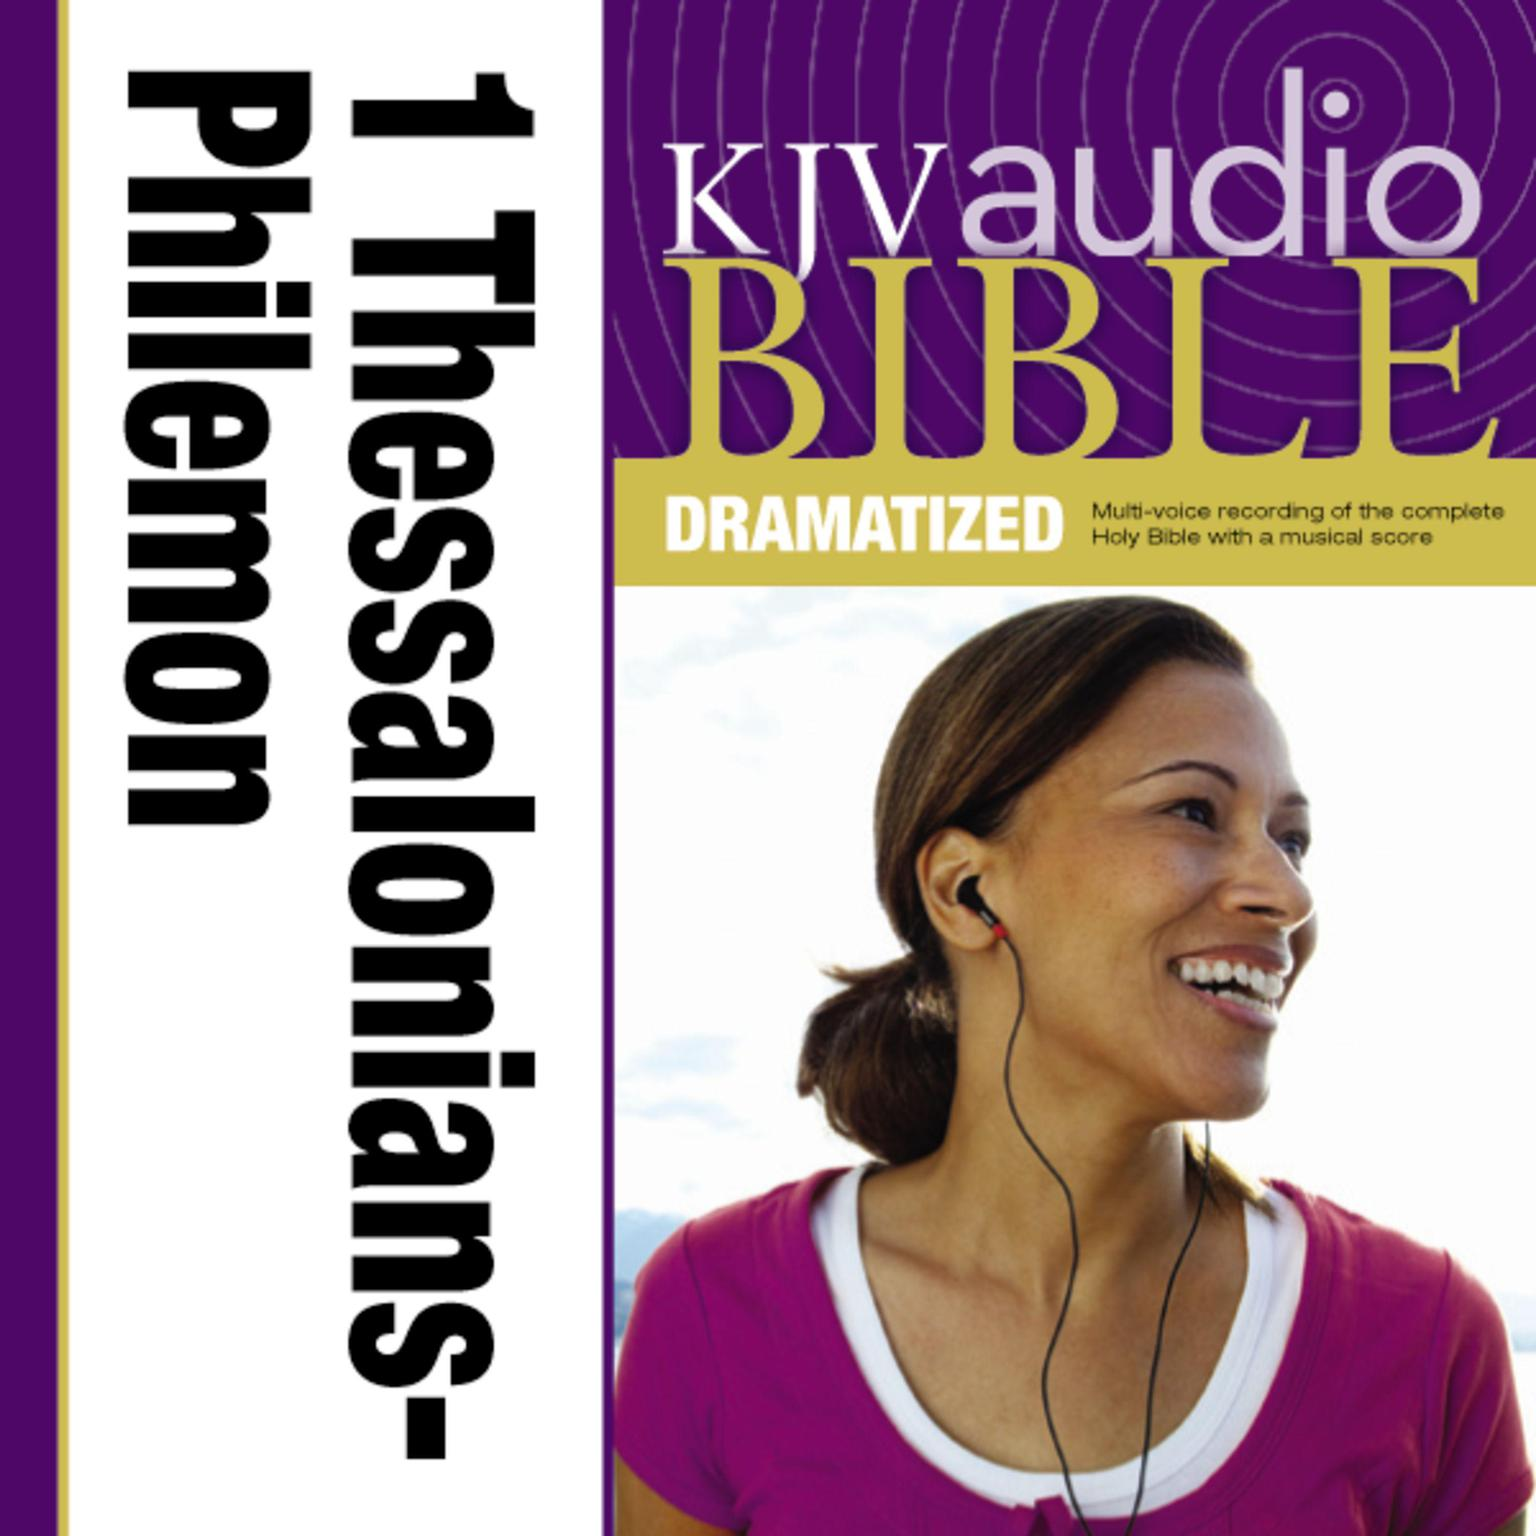 Printable KJV, Audio Bible, Dramatized: 1 and 2 Thessalonians, 1 and 2 Timothy, Titus, and Philemon, Audio Download Audiobook Cover Art